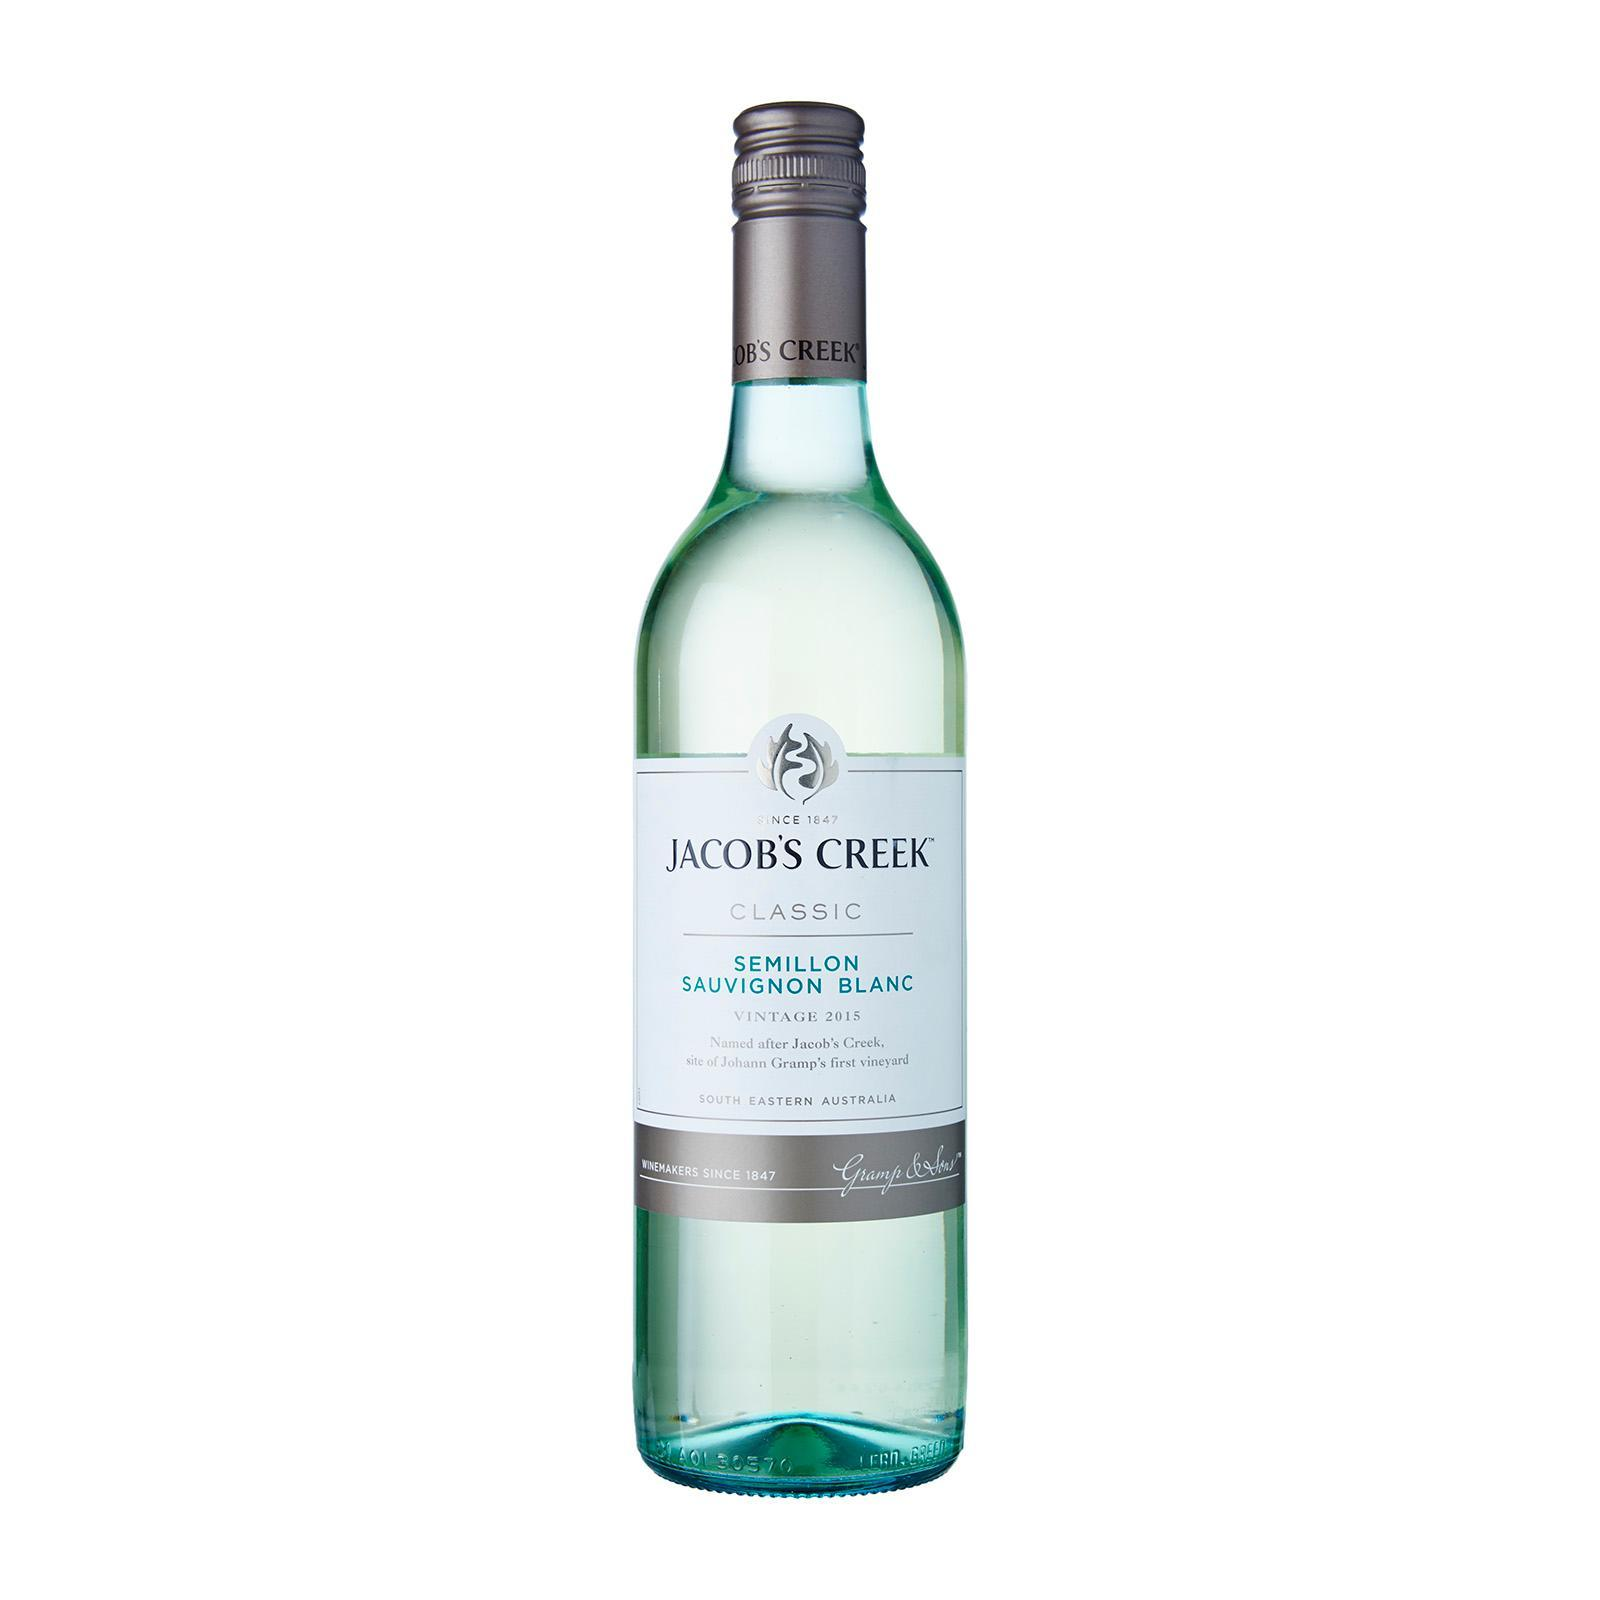 Jacob's Creek Semillion Sauvignon Blanc